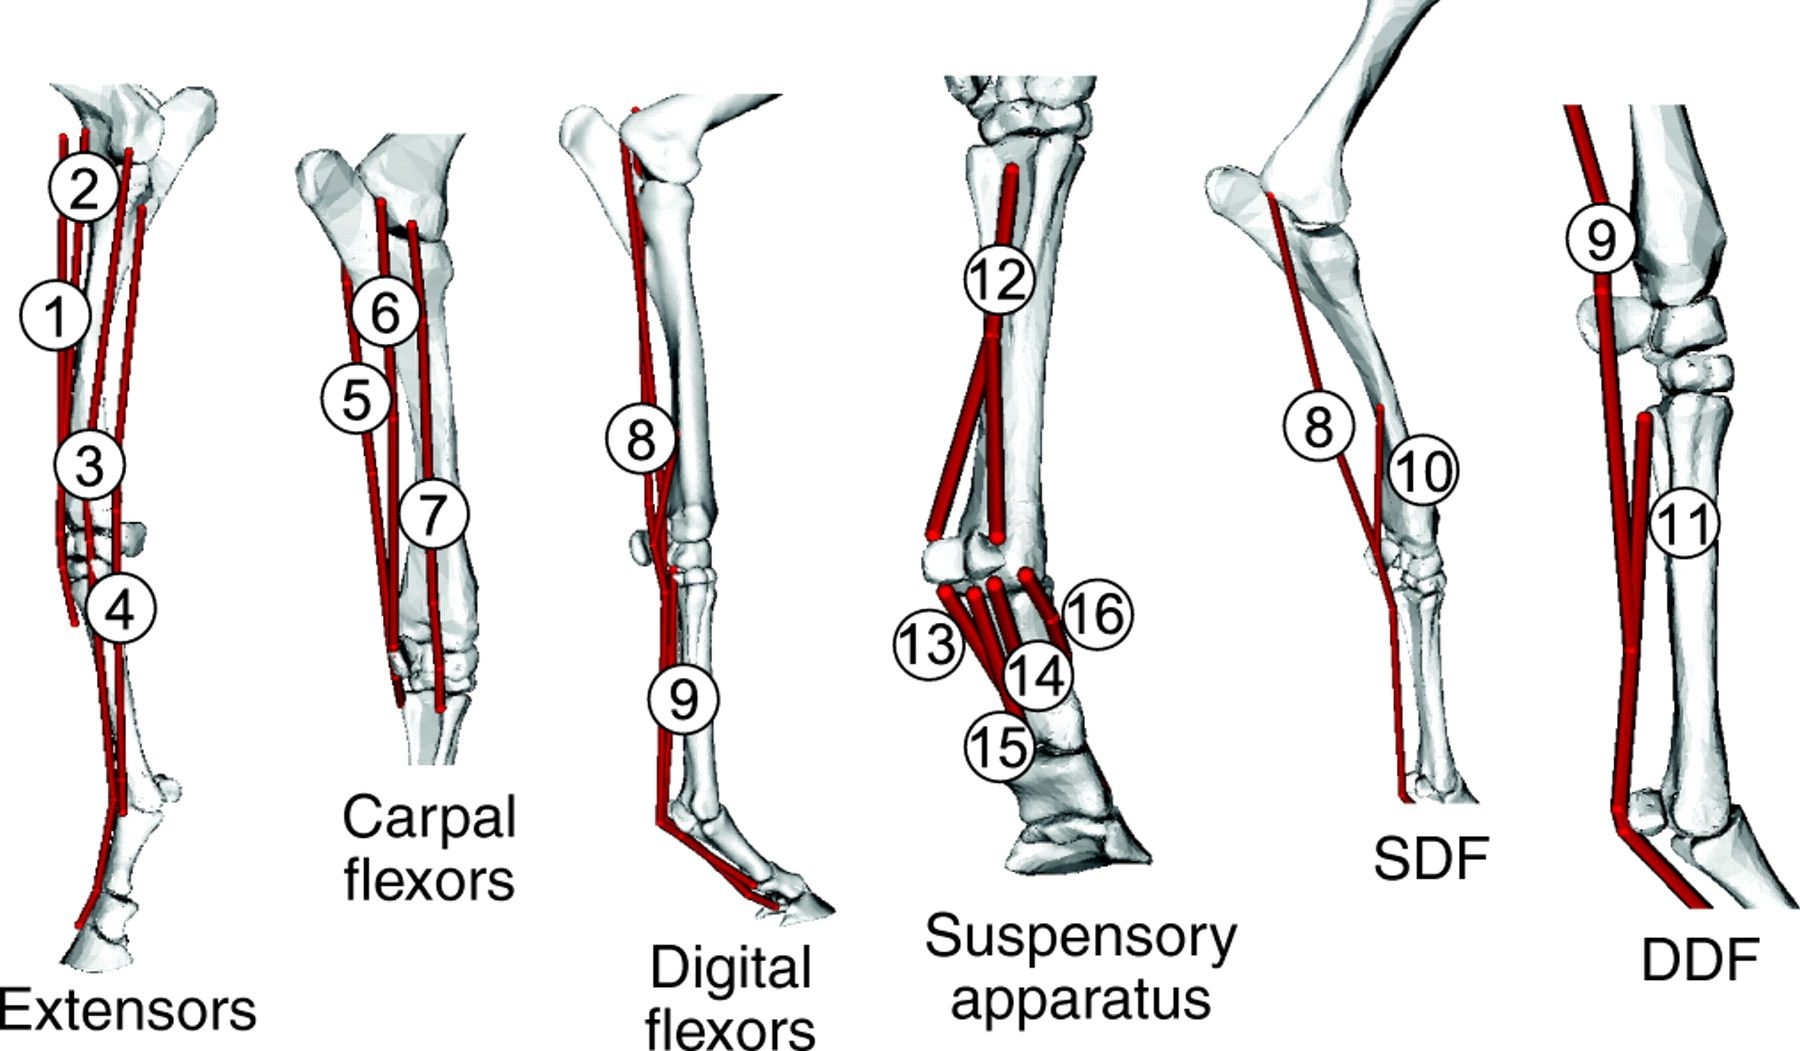 Schematic Diagram Of The Musculoskeletal Model Used In This Study The Extensor Muscles Included In The Model Were The Lacertus Fi Horses Extensor Muscles Legs